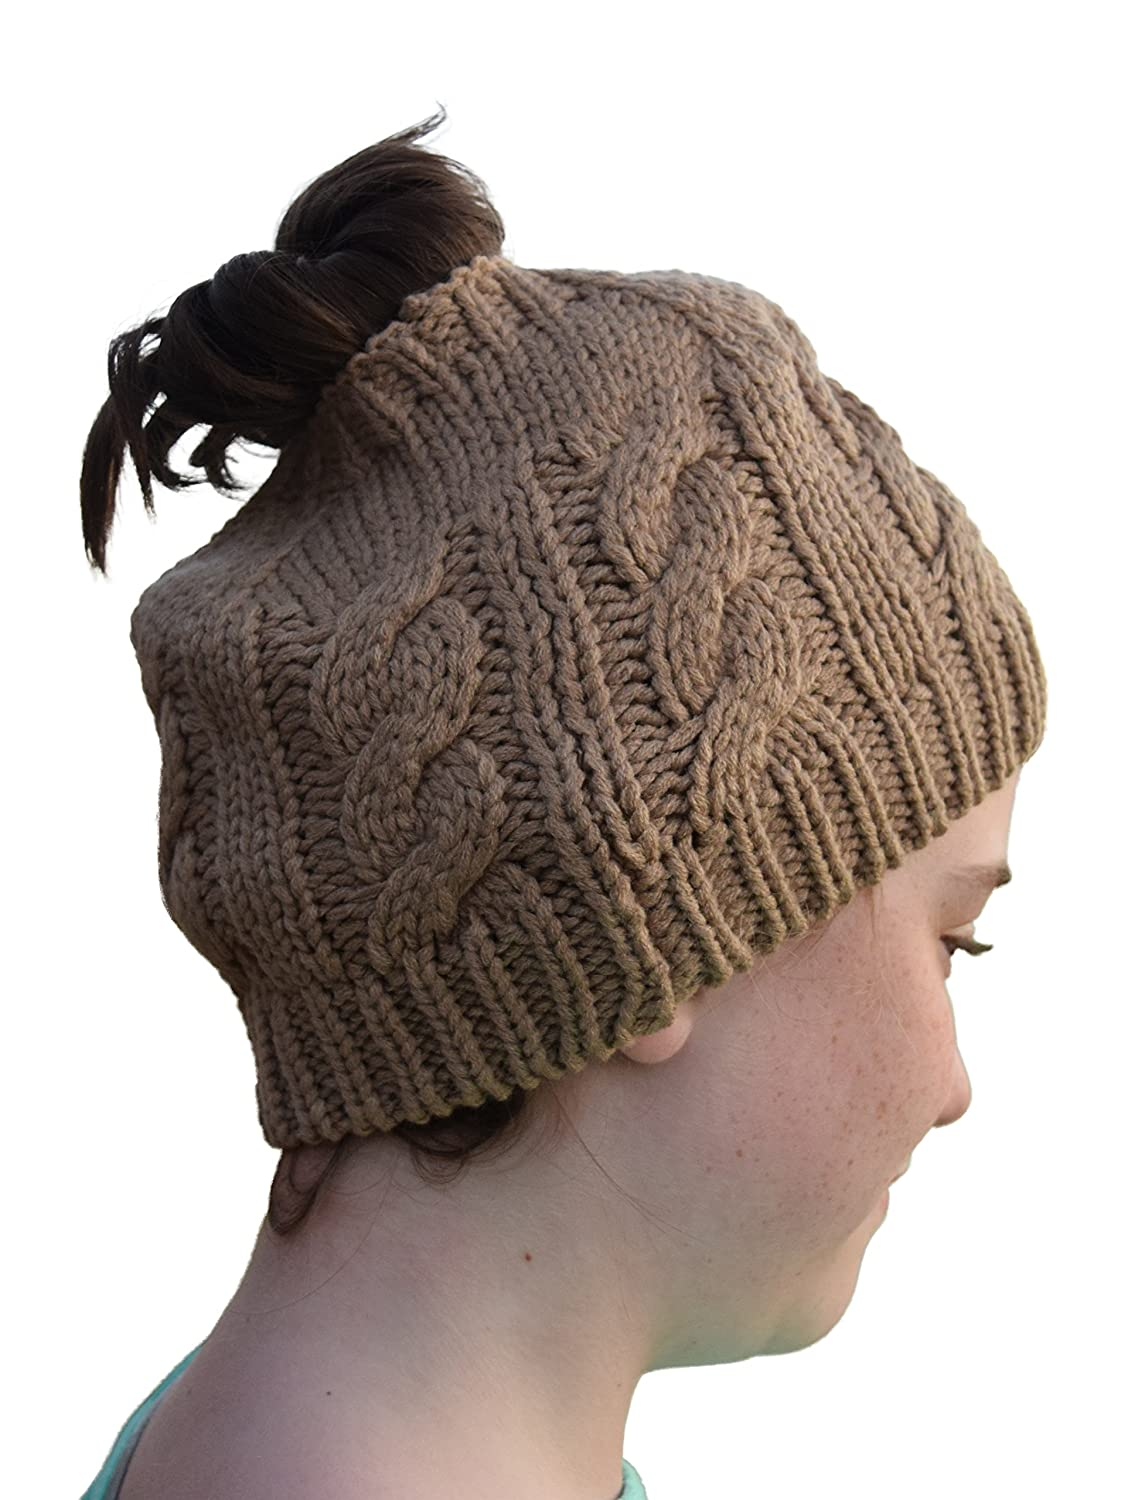 Nickanny s Womens Crochet Messy Bun Beanie Slouchy Style with Hole for  Ponytail Hat Perfect Work Out Hat or Running or Bad Hair Day (Beige) at  Amazon ... d7e2b7ca8c6